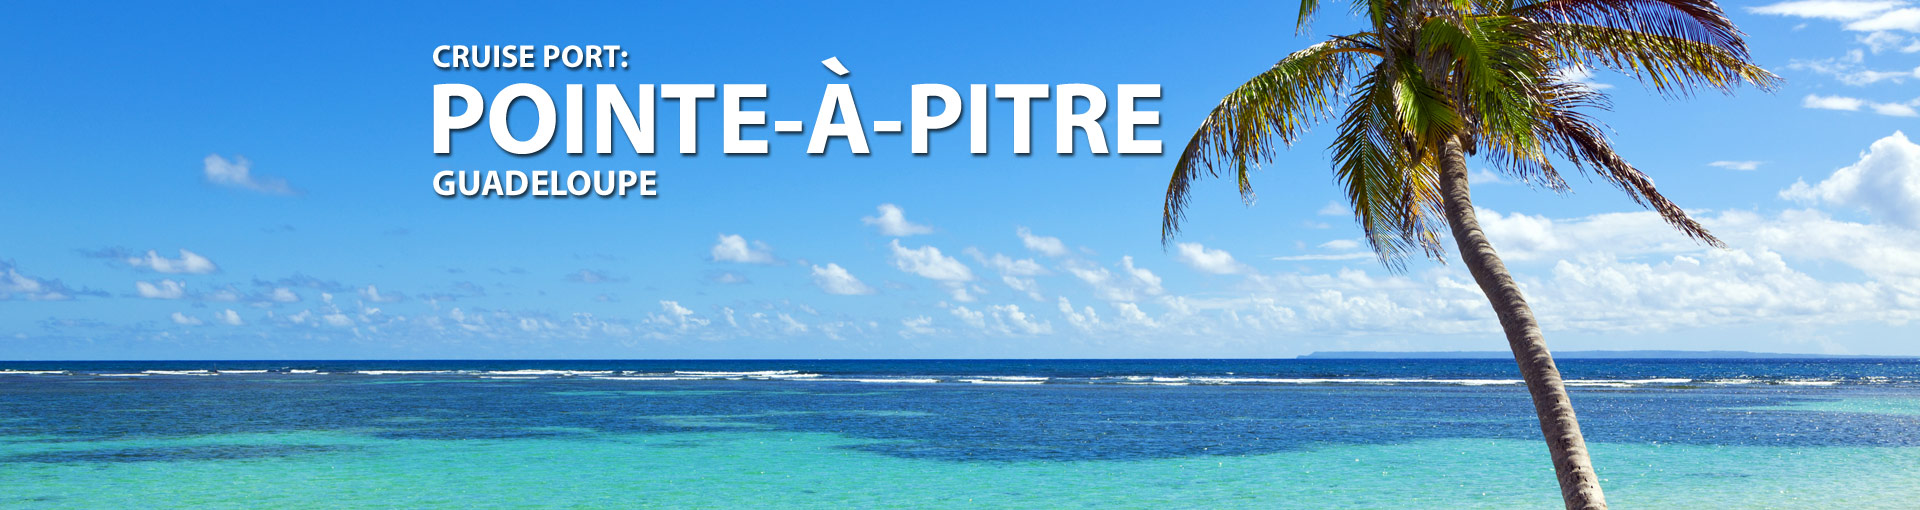 Cruises from Pointe-a-Pitre, Gaudeloupe